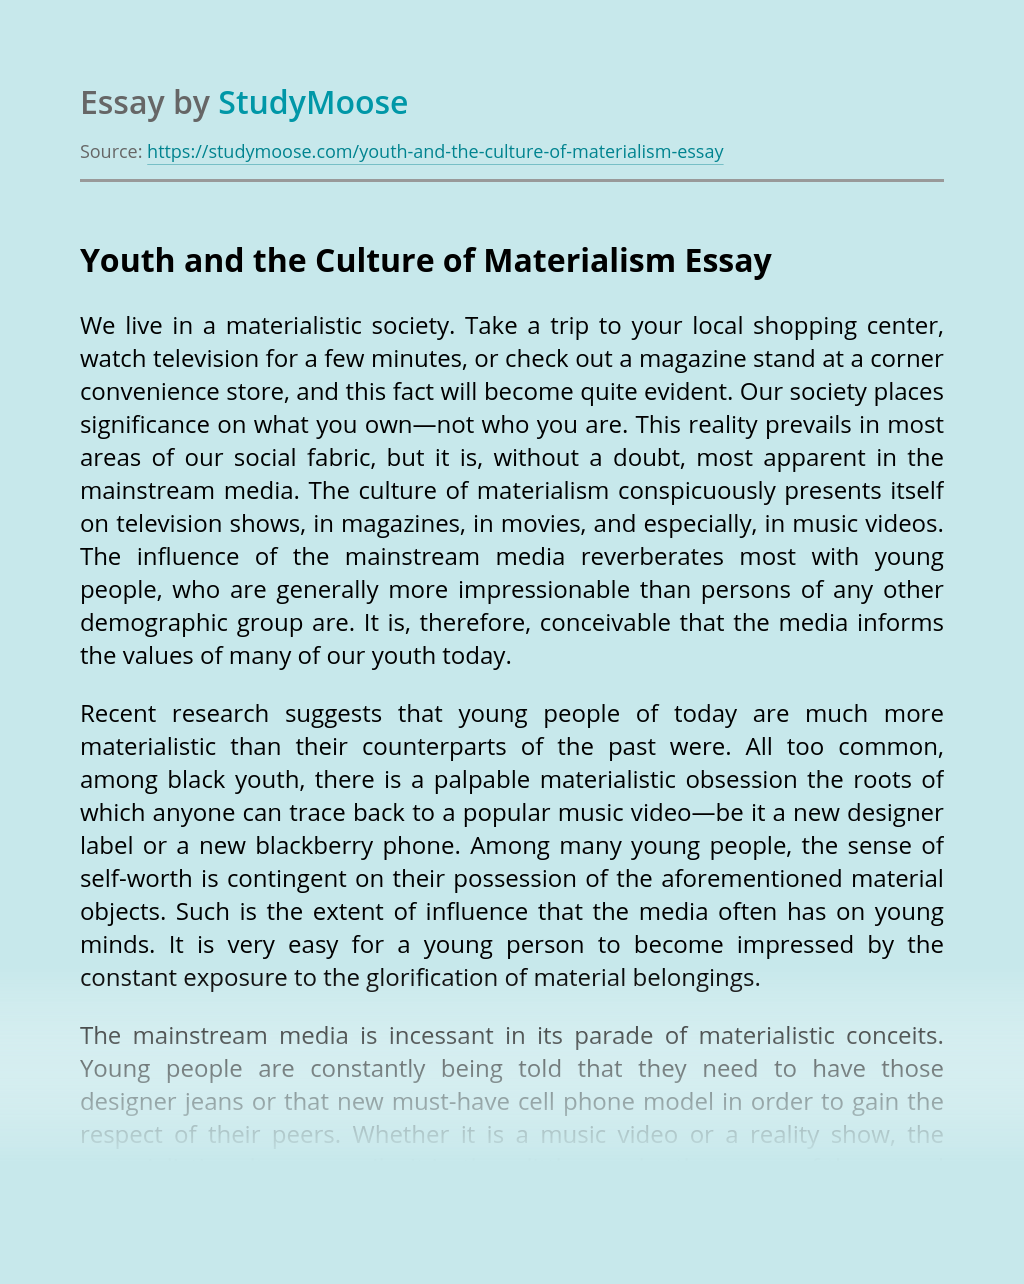 Youth and the Culture of Materialism